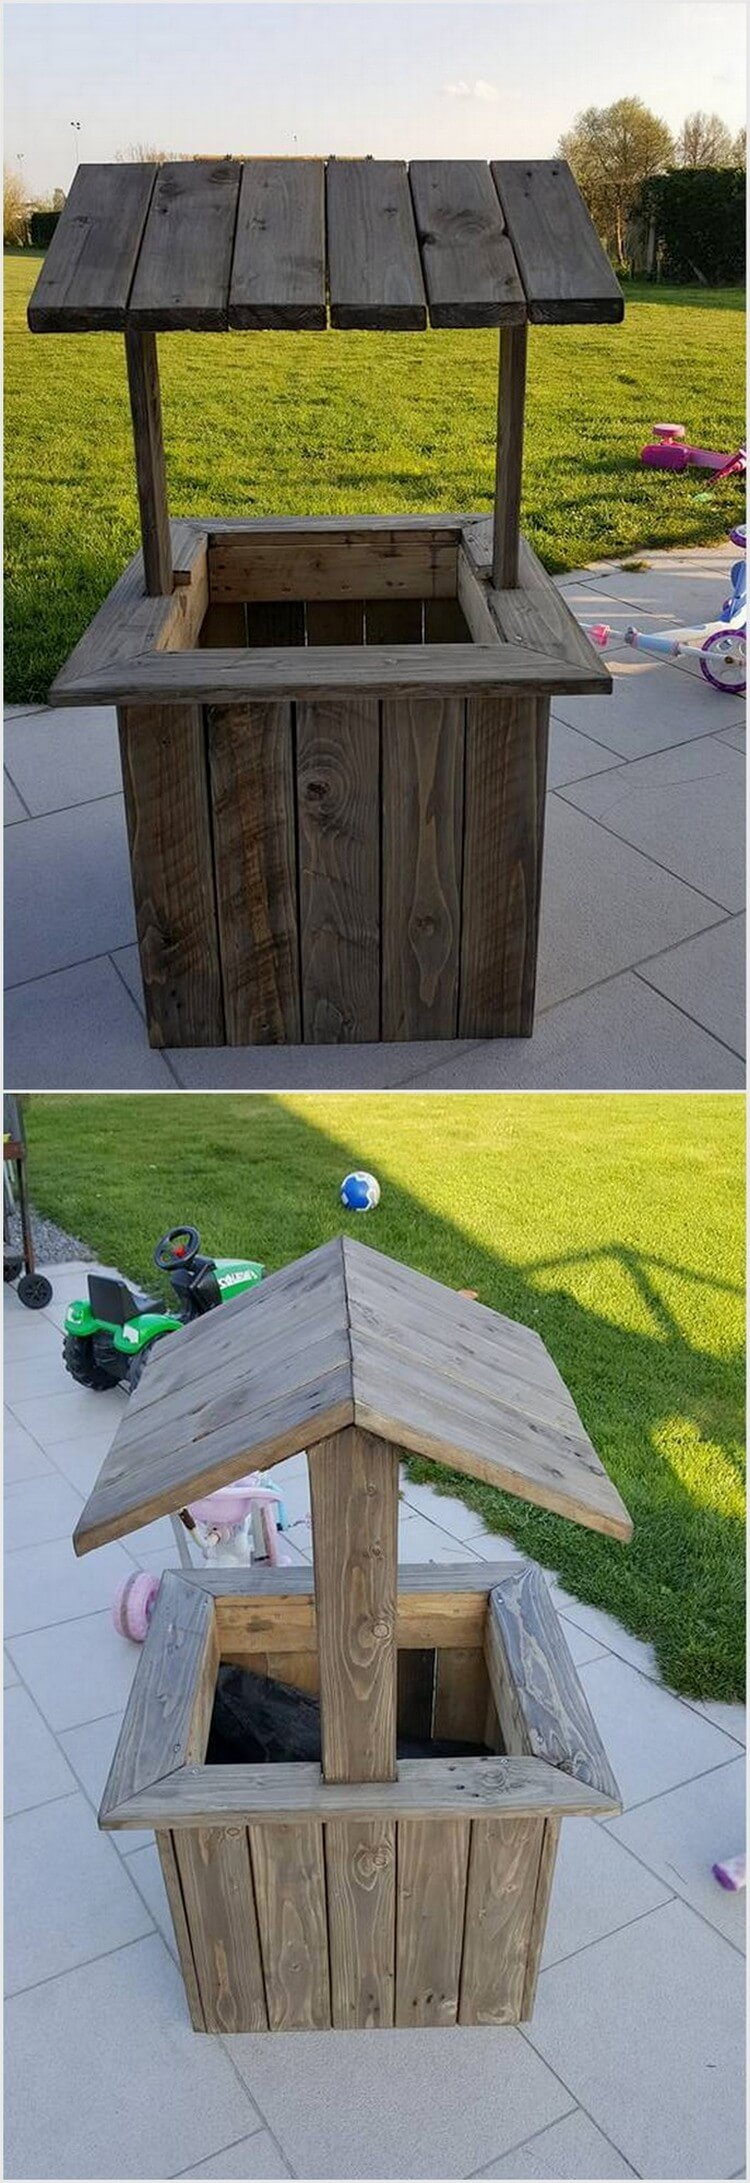 Recycled Pallet Creation for Garden